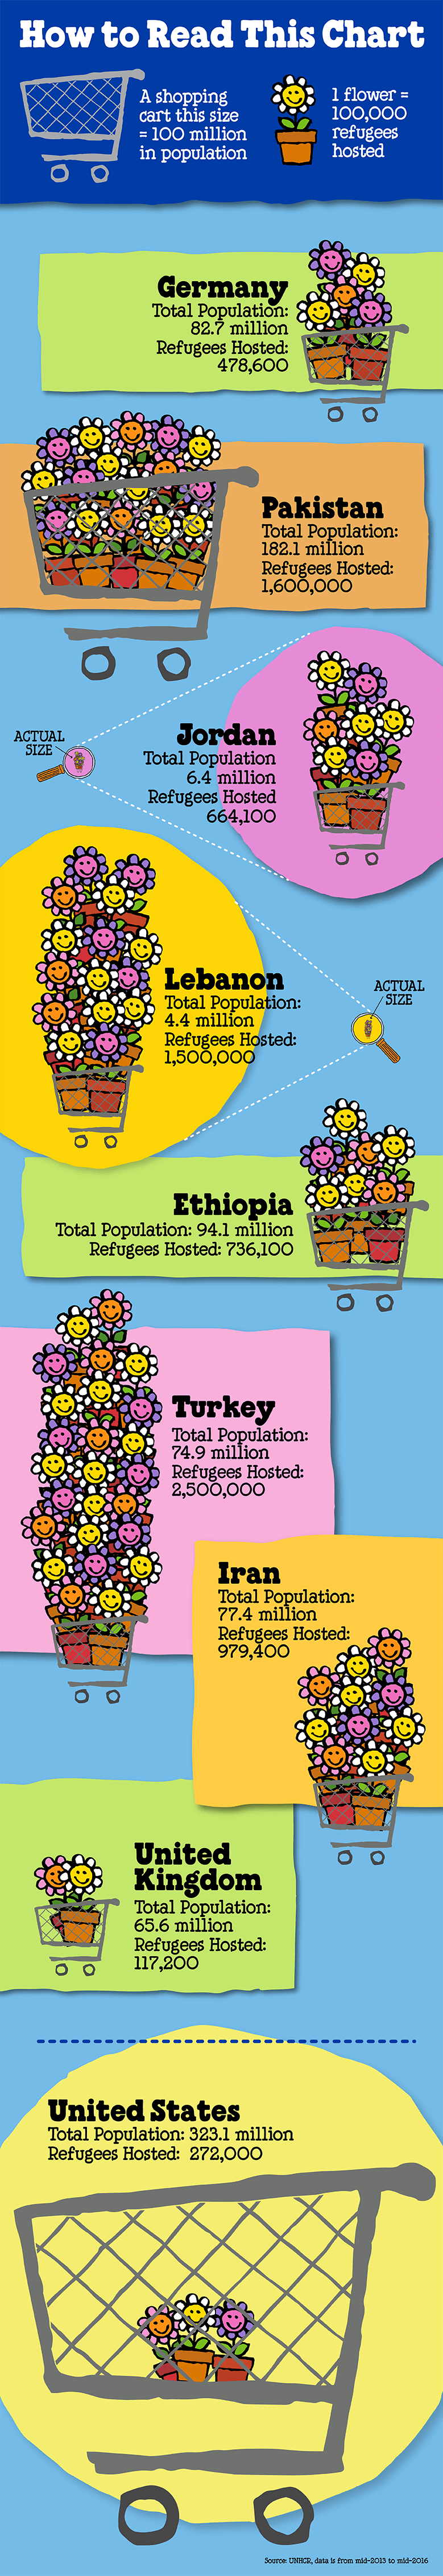 6897-shopping-cart-refugee-graphic-flowers.png